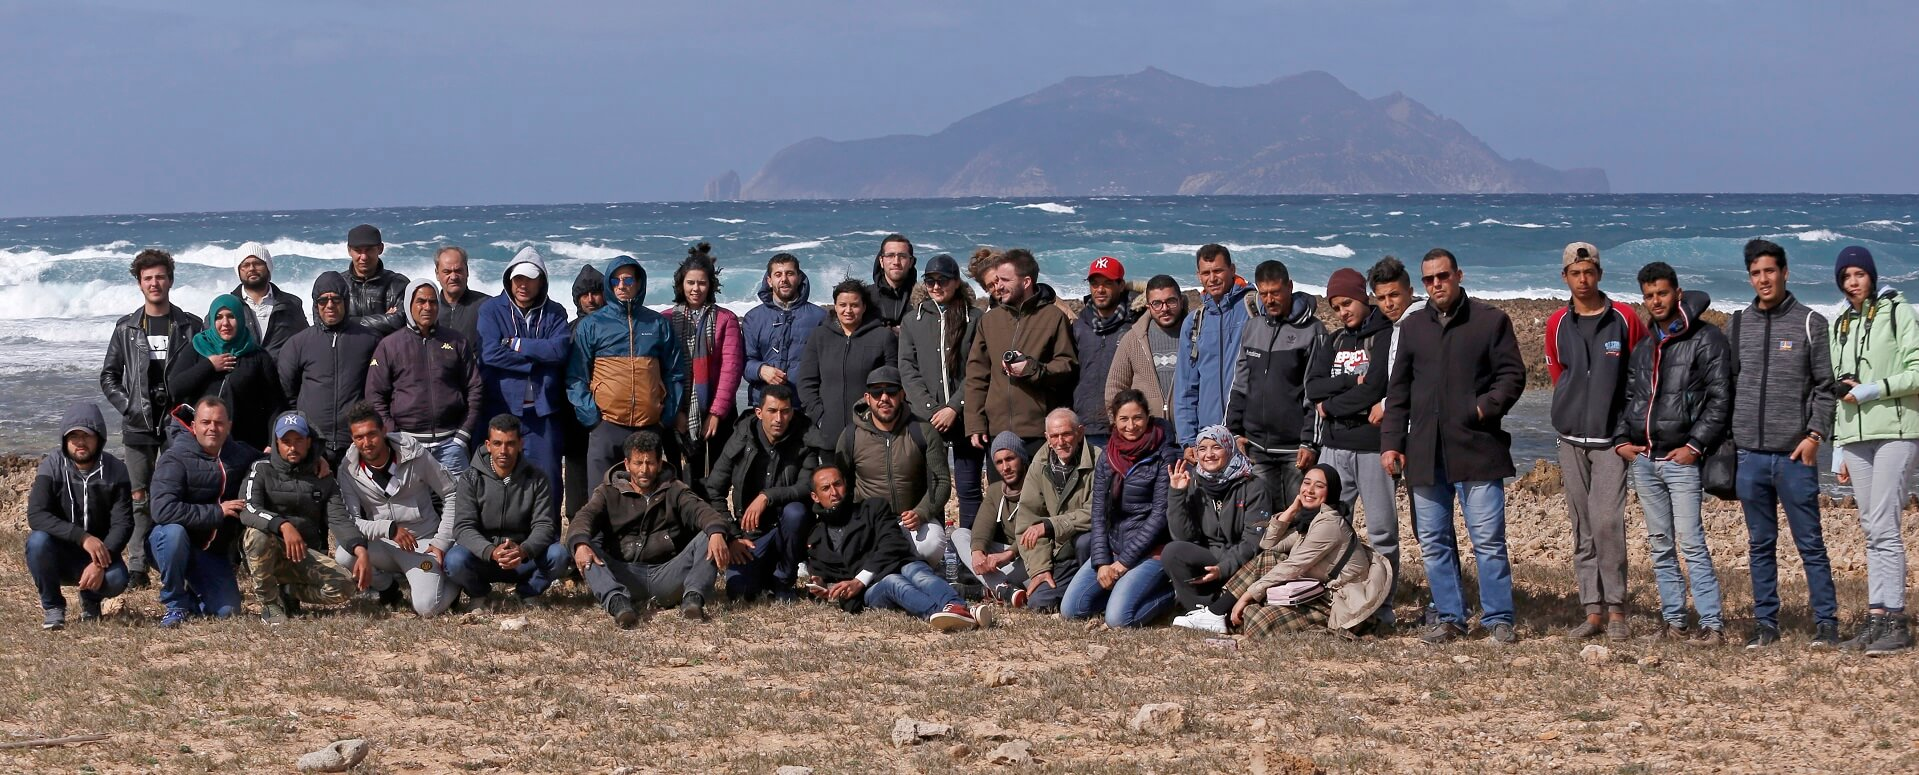 Group shot after consultation meeting with fishers, Zemba island shown - © Awatef Abiadh